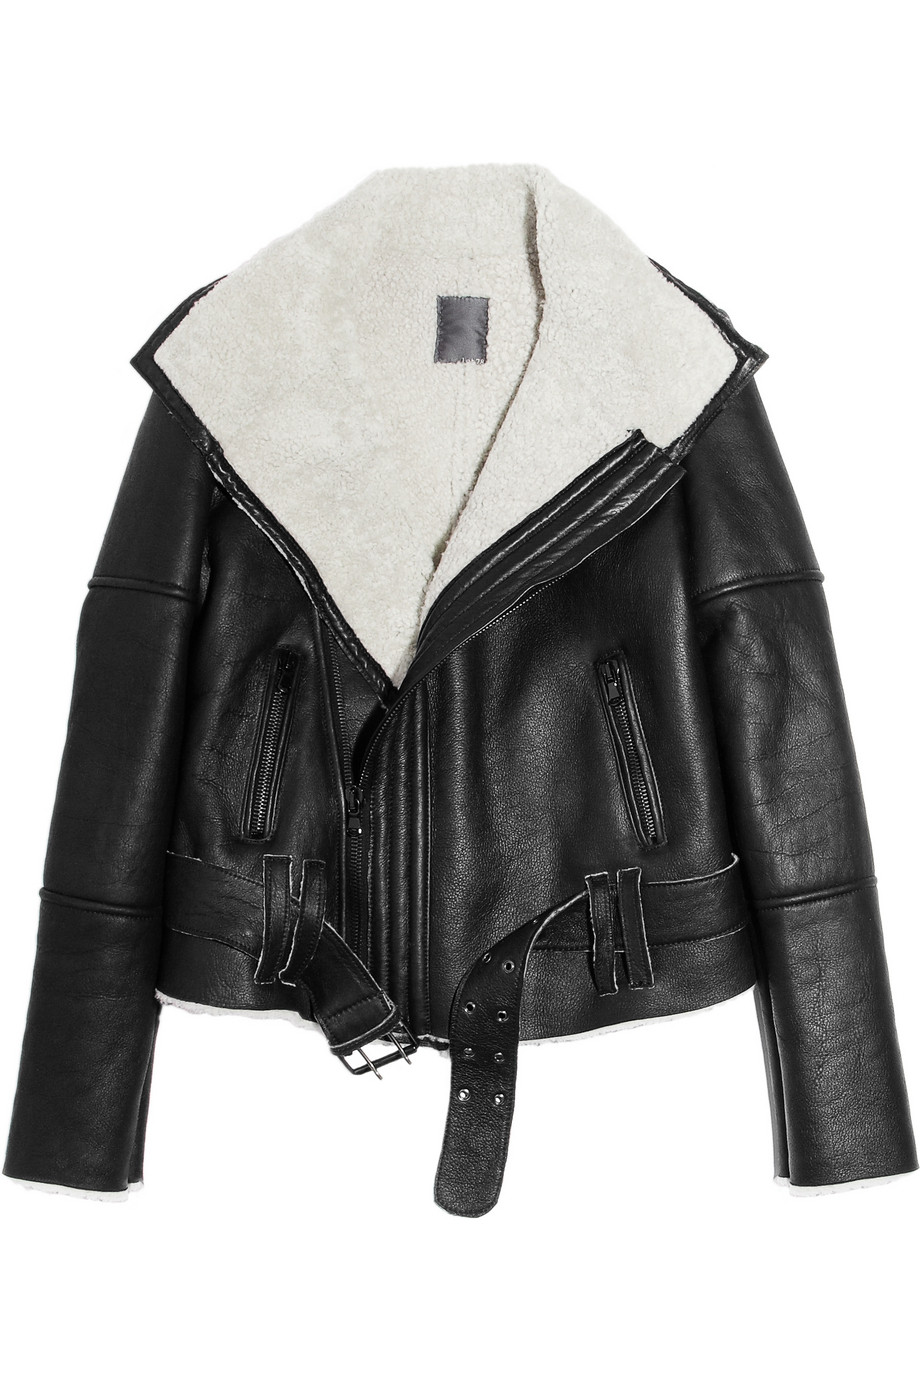 Lot78 Blake Shearling and Leather Biker Jacket in Black | Lyst